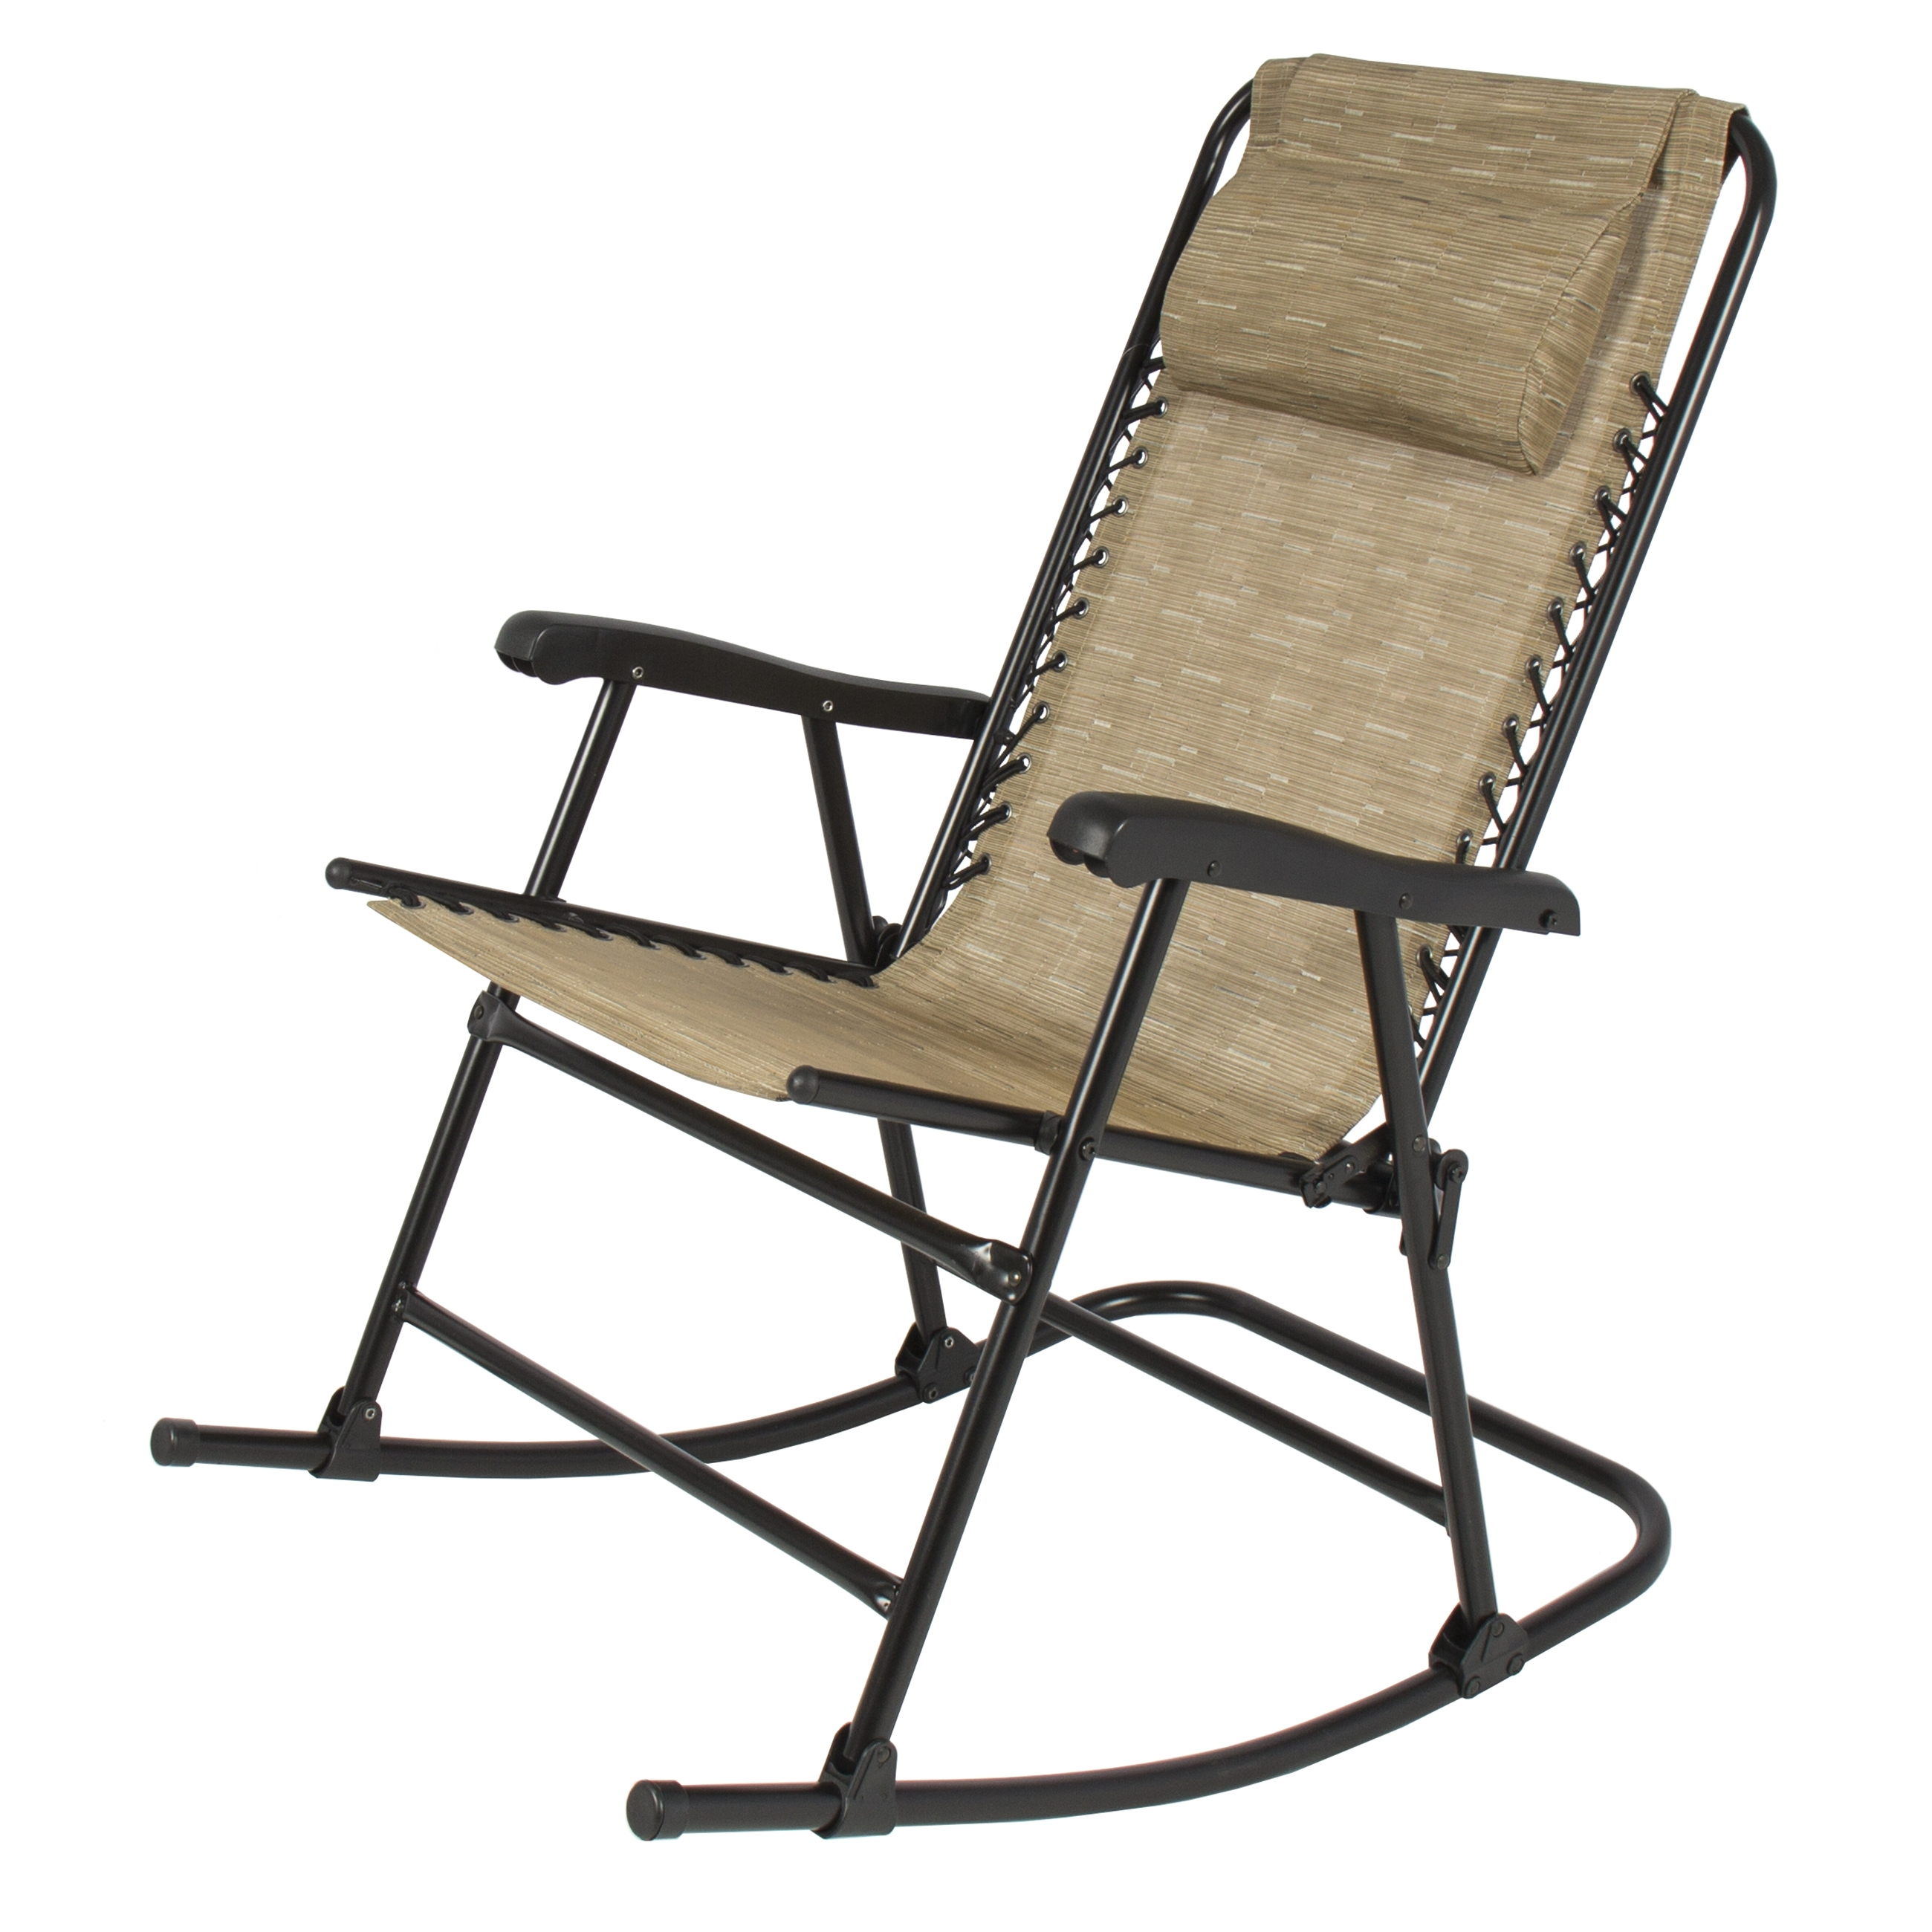 Lovely Patio Rocking Chairs Folding Rocking Chair Foldable Rocker In Latest Aluminum Patio Rocking Chairs (View 5 of 15)